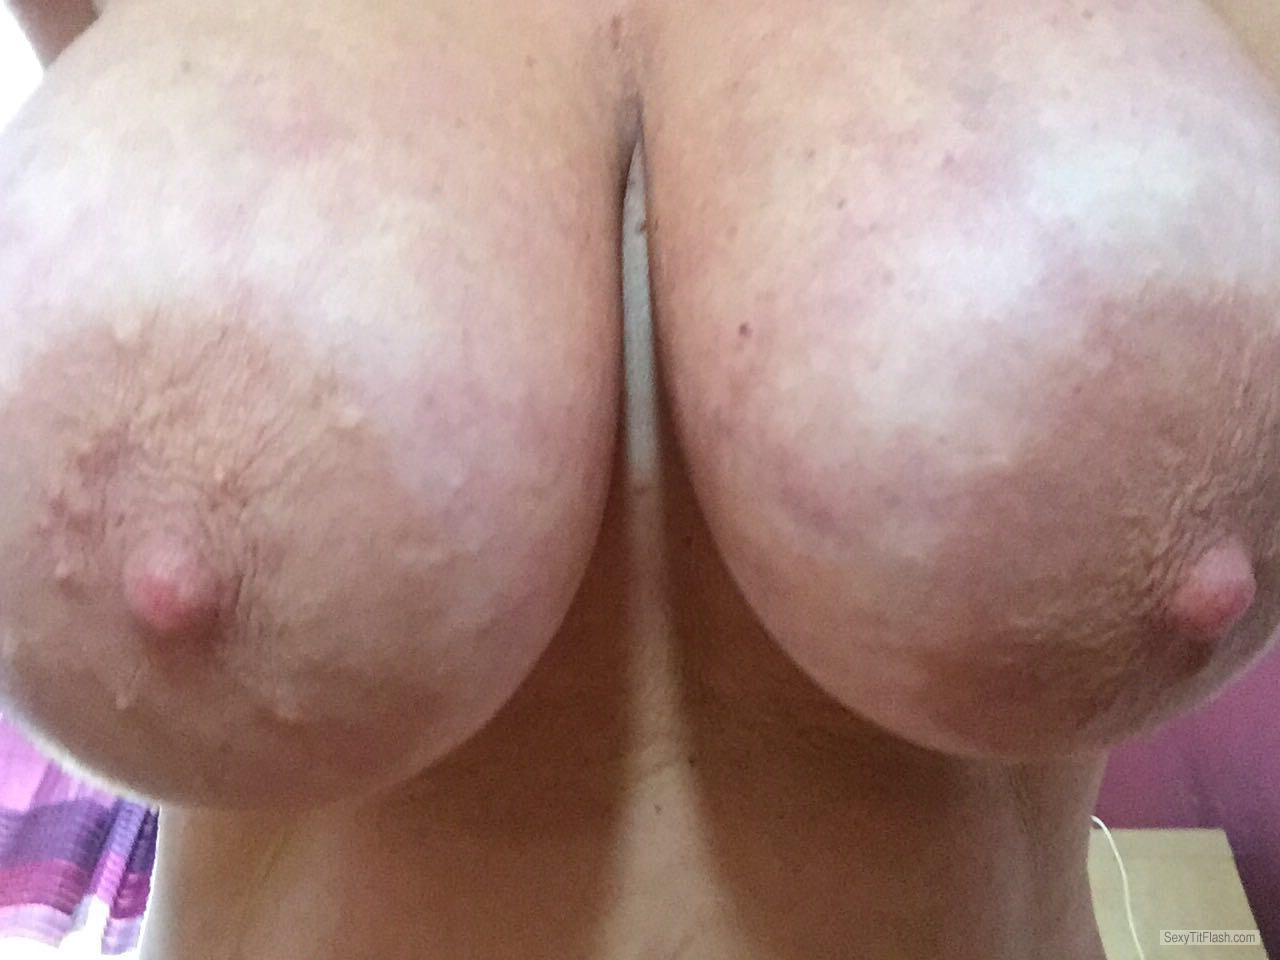 Tit Flash: Room Mate's Very Big Tits (Selfie) - Gills Beauty's from United Kingdom